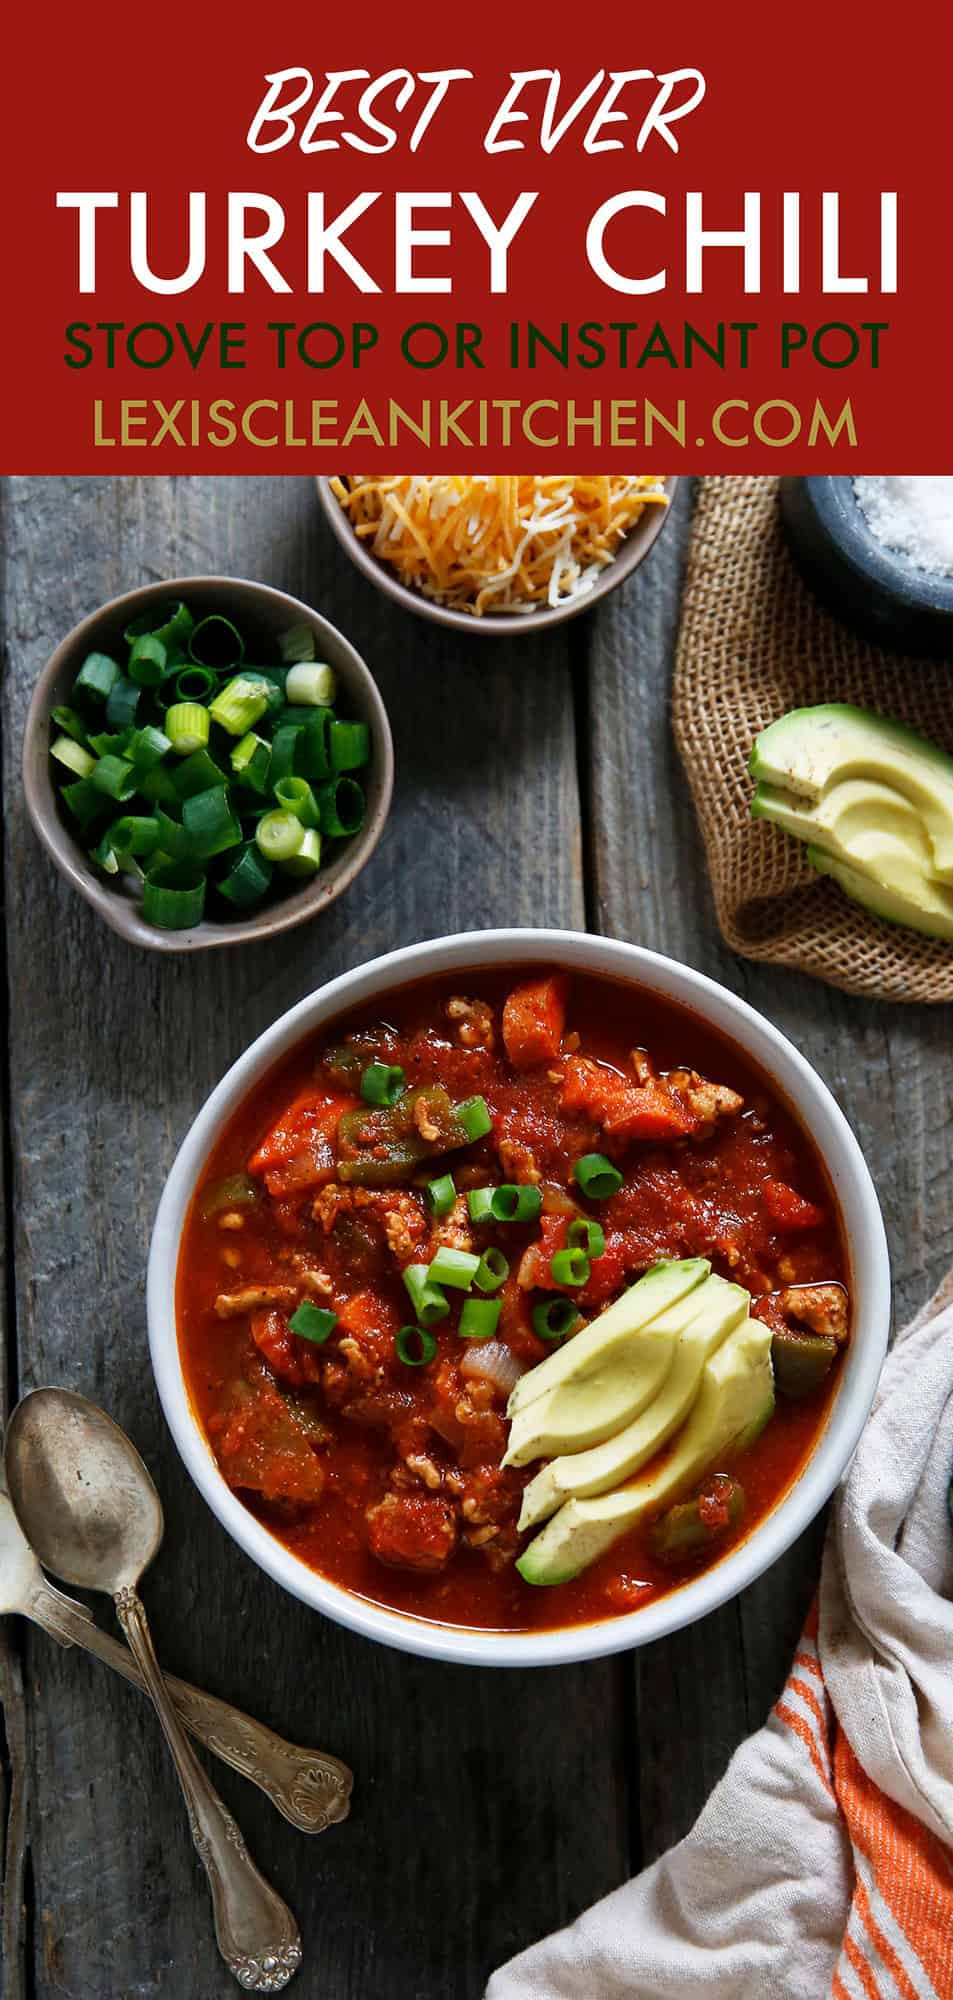 Healthier Classic Turkey Chili - Lexi's Clean Kitchen #turkey #chili #soup #intstantpot